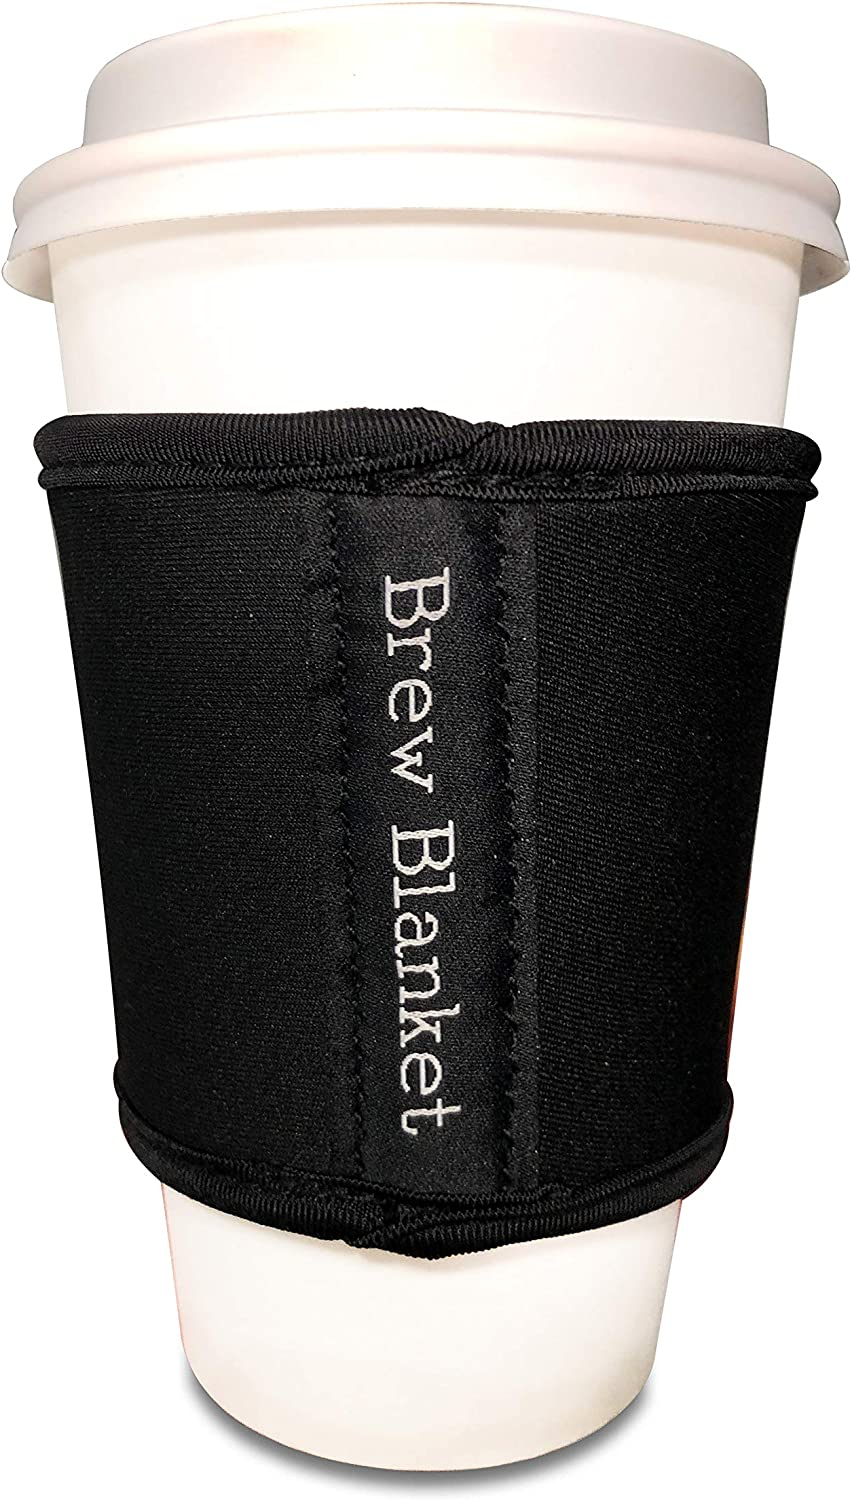 Insulated Drink Holder - Reusable Coffee Sleeve and Beer Pint Glass Sleeve - Neoprene Drink Insulator for Hot & Cold Beverages